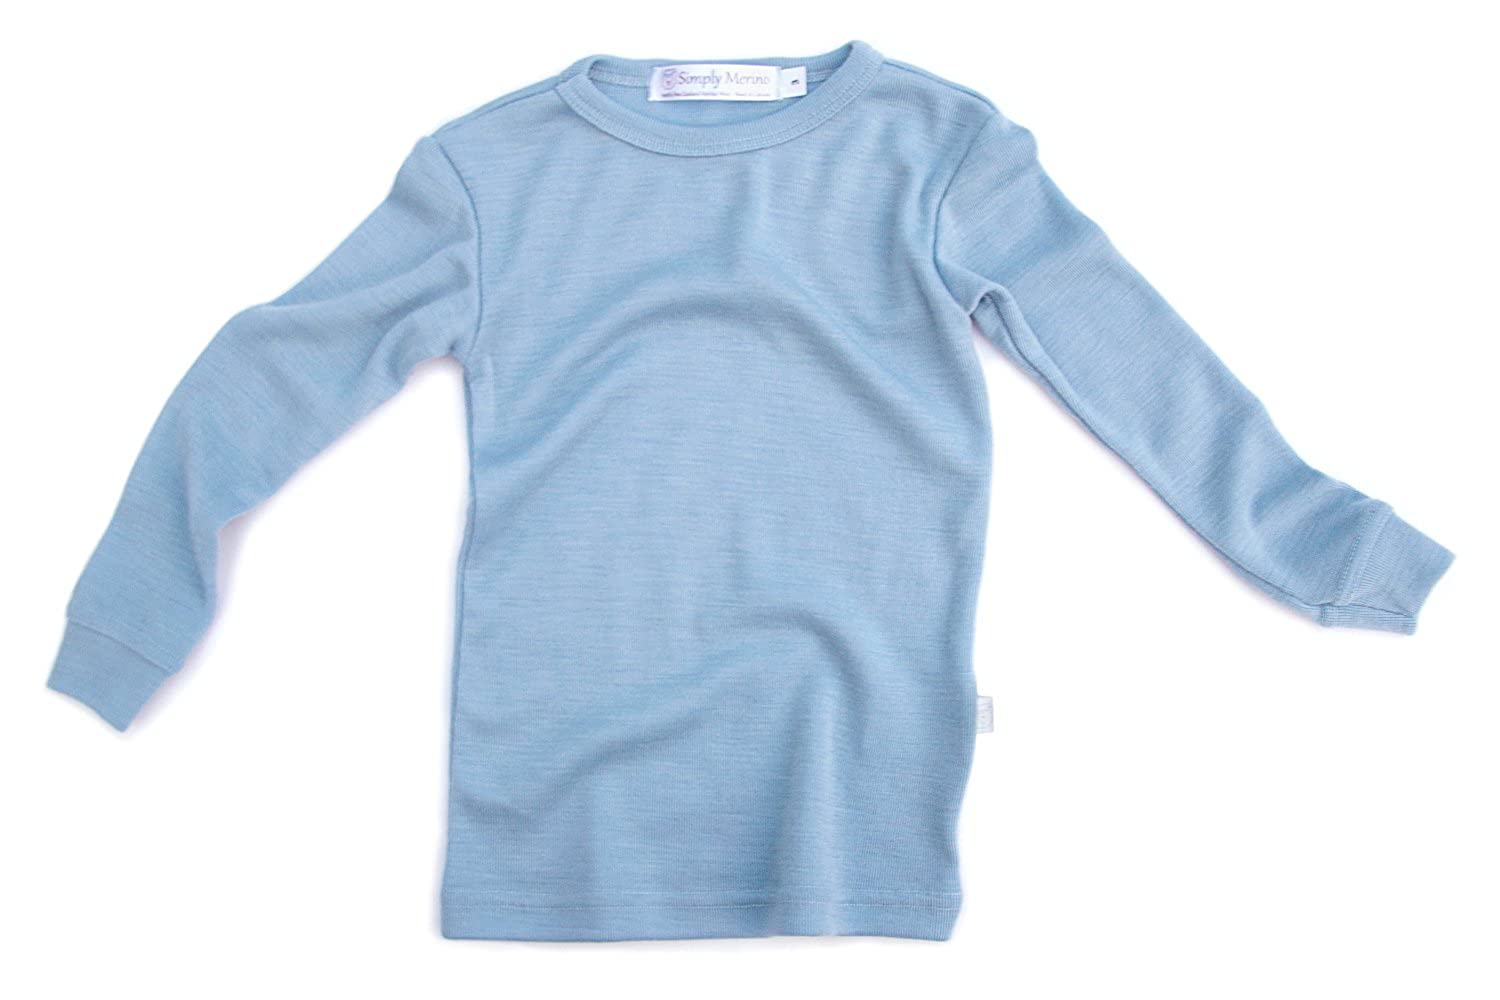 Merino Wool Kids Pajama Set Thermal Underwear Base Layer PJ Unisex.